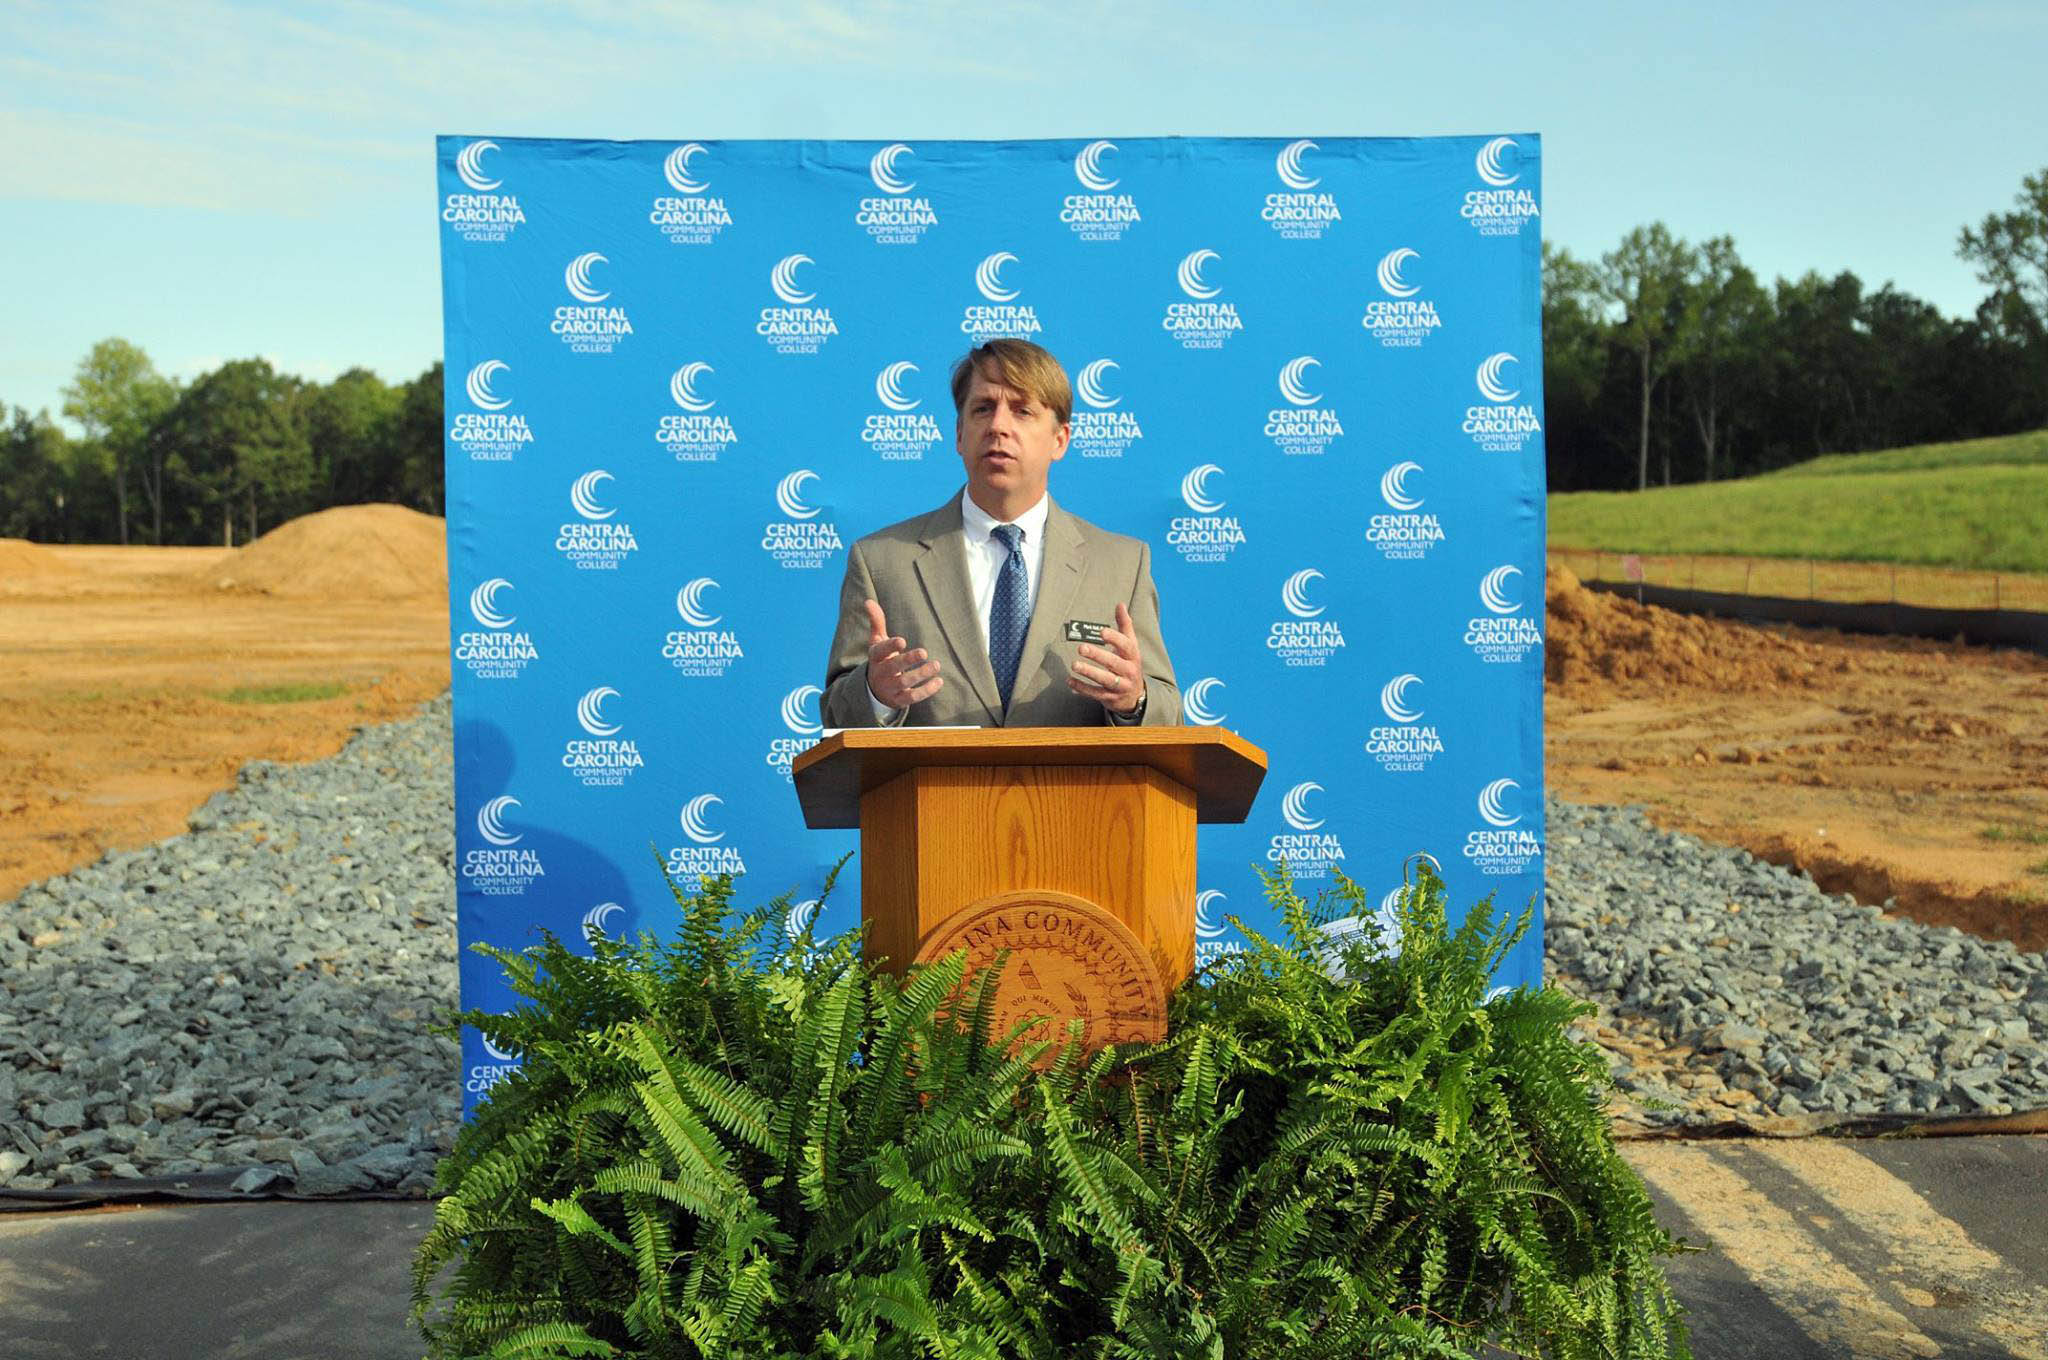 Click to enlarge,  Dr. Mark Hall, Central Carolina Community College Chatham Provost, spoke at the college's Aug. 22 groundbreaking ceremony for the new Chatham Health Sciences Center.